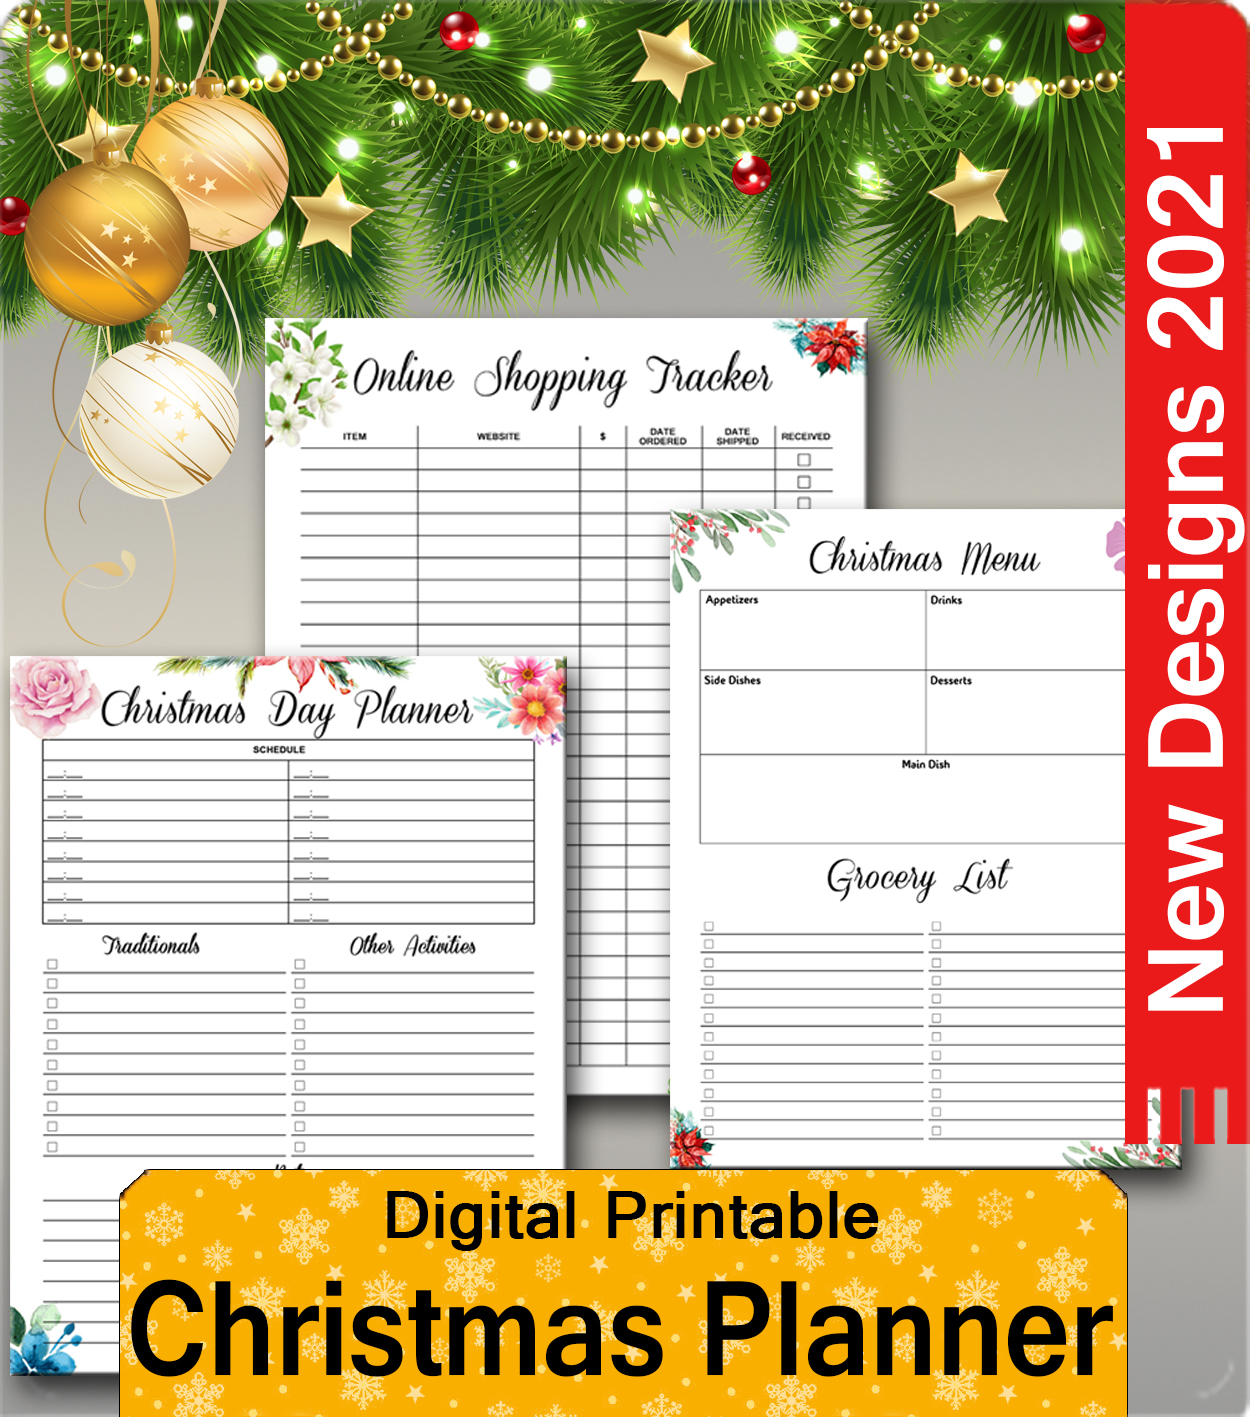 New Christmas Party Planners